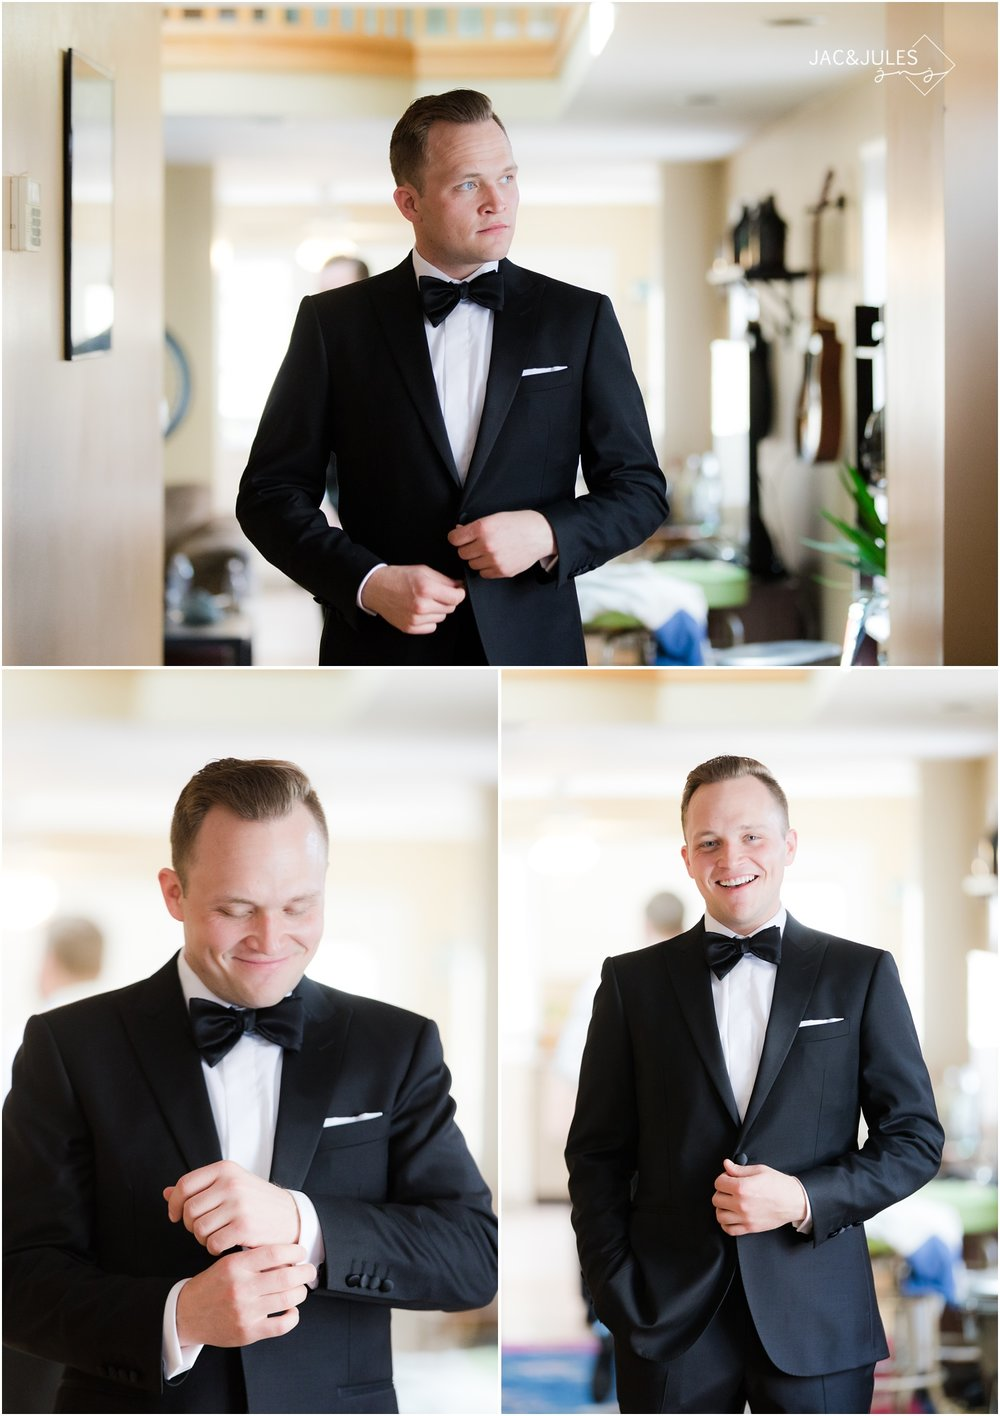 Groom portraits before a wedding in Baltimore, MD.